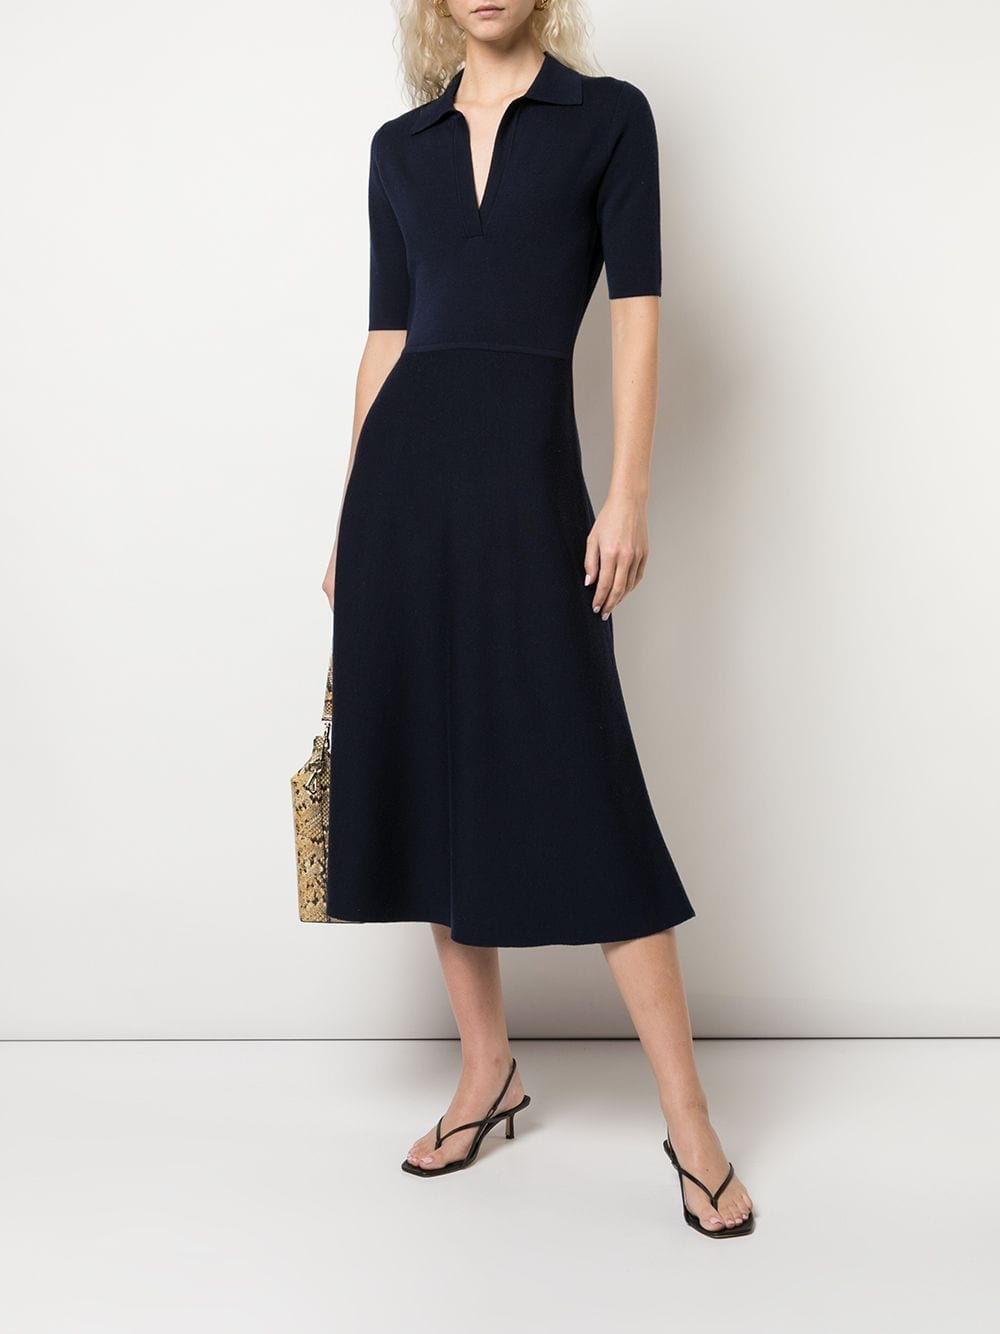 GABRIELA HEARST Bourgeois Collared Midi Dress